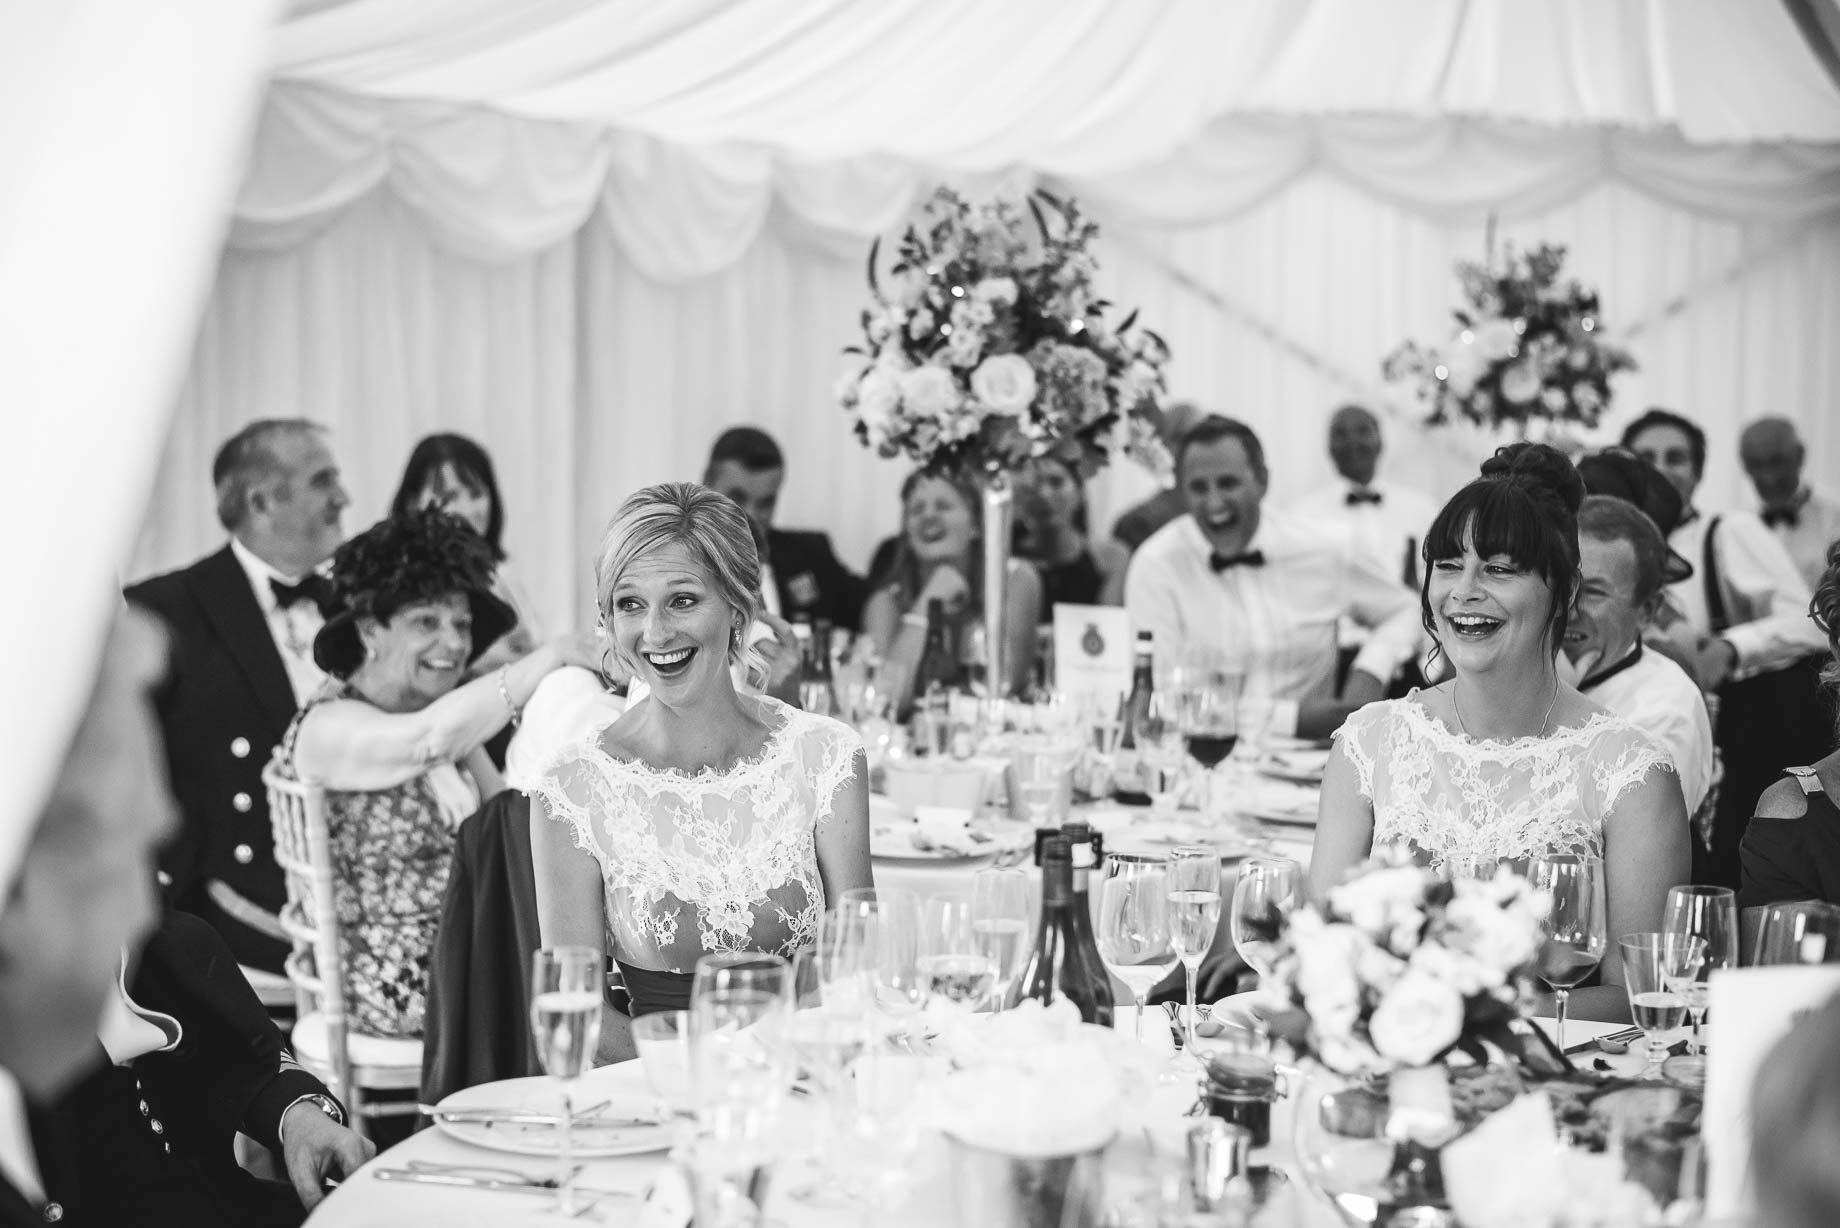 Hampshire wedding photography - Emily and Rob - Guy Collier Photography (167 of 192)